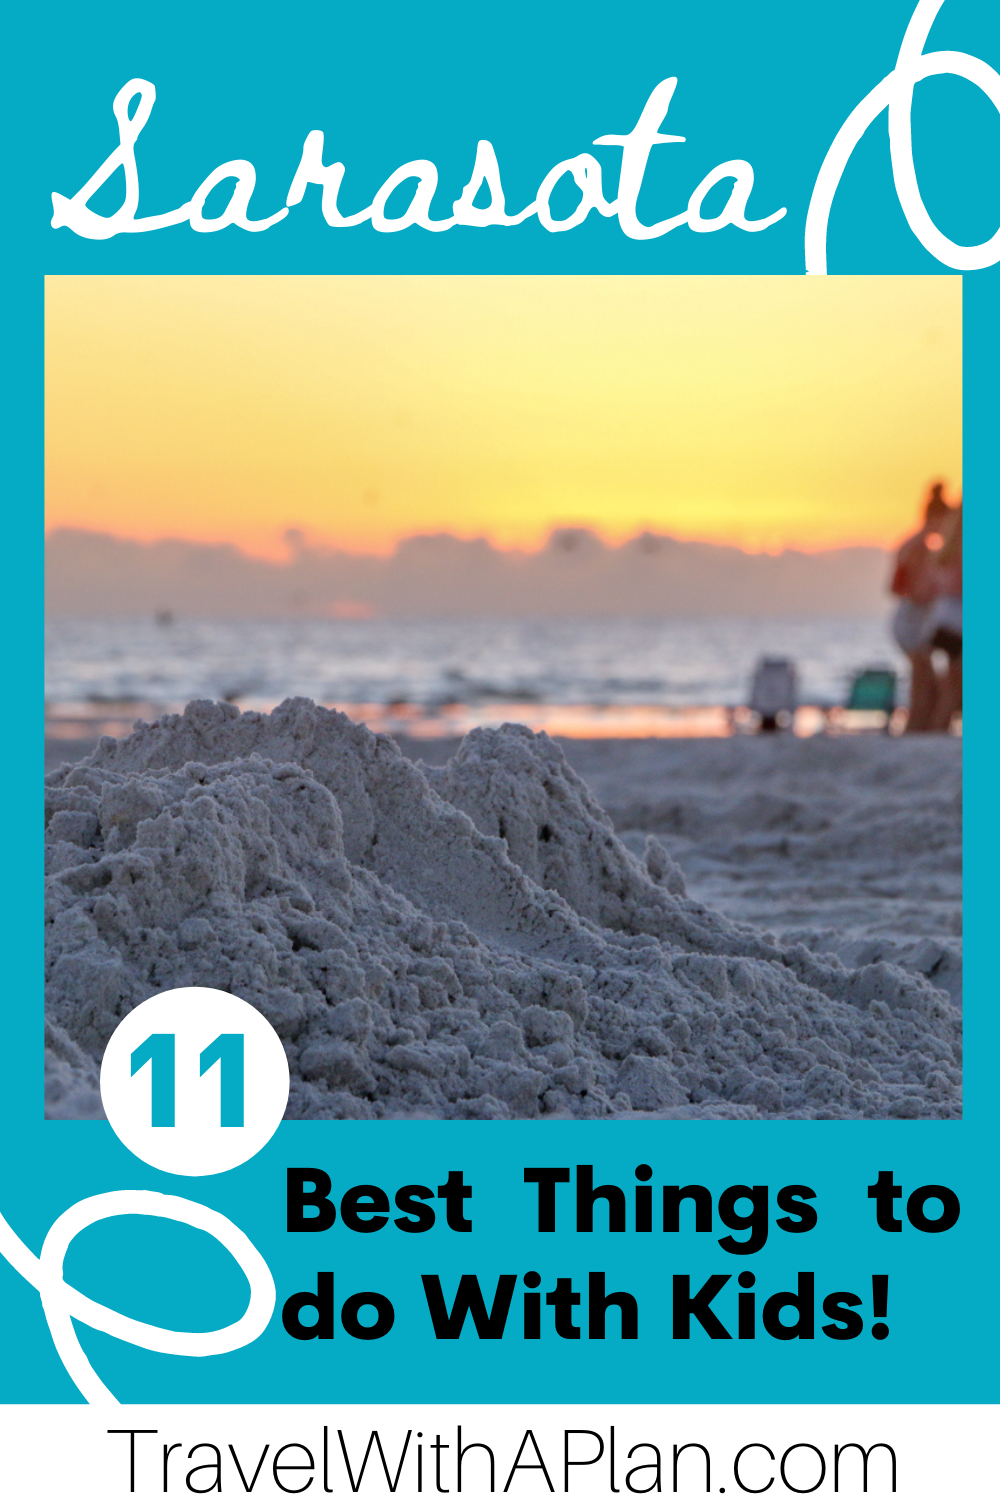 Find out the best things to do in Sarasota with kids from Top US family travel blog, Travel With A Plan! #Sarasota #LidoBeach #familytravel